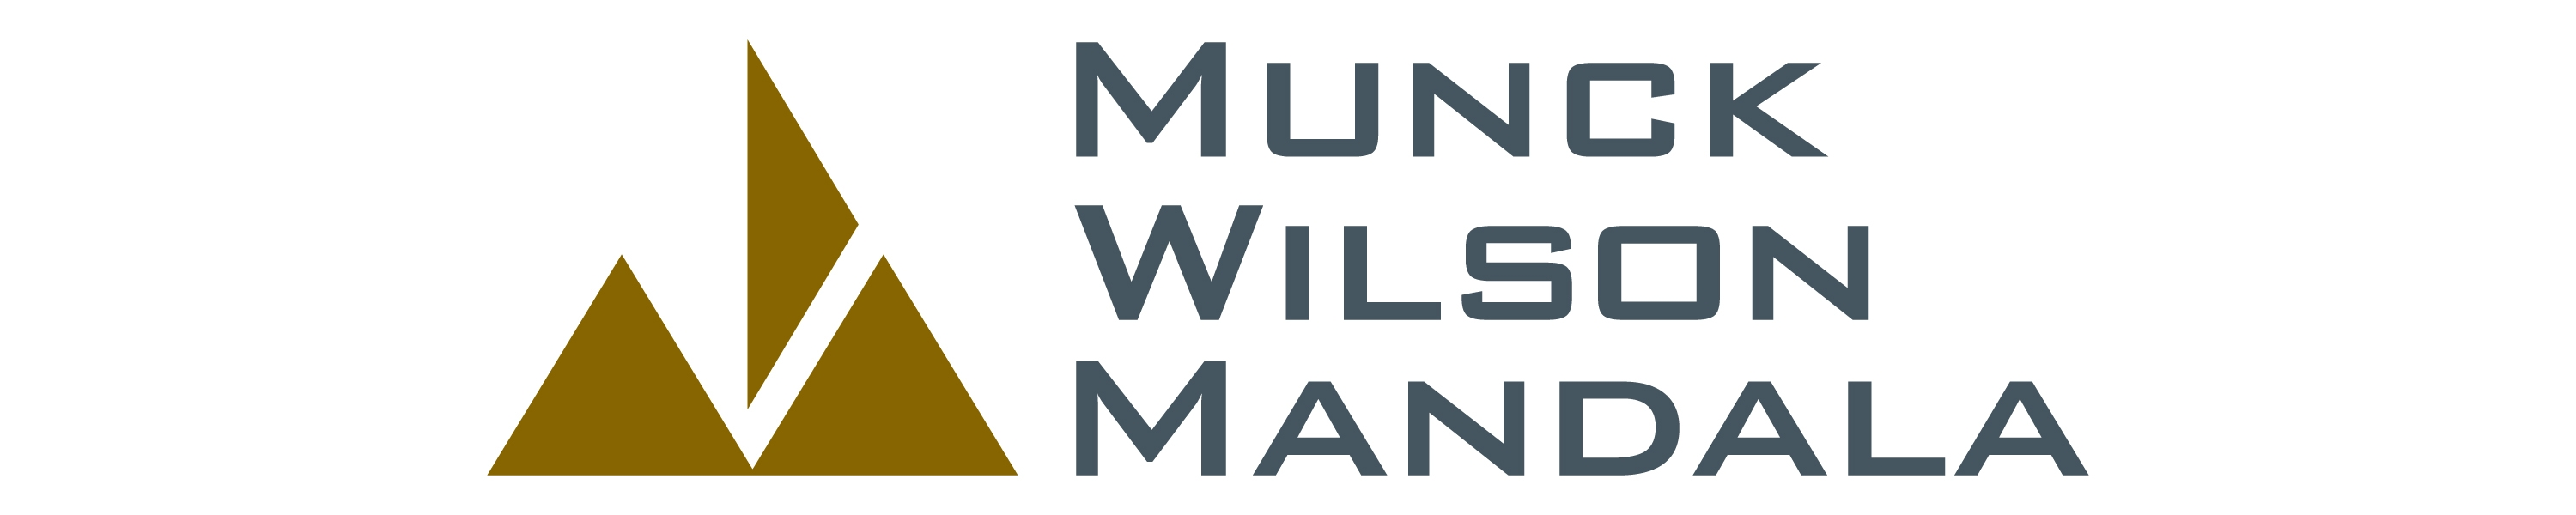 Munck Wilson Mandala Welcomes New LA Partner Jenifer Wallis